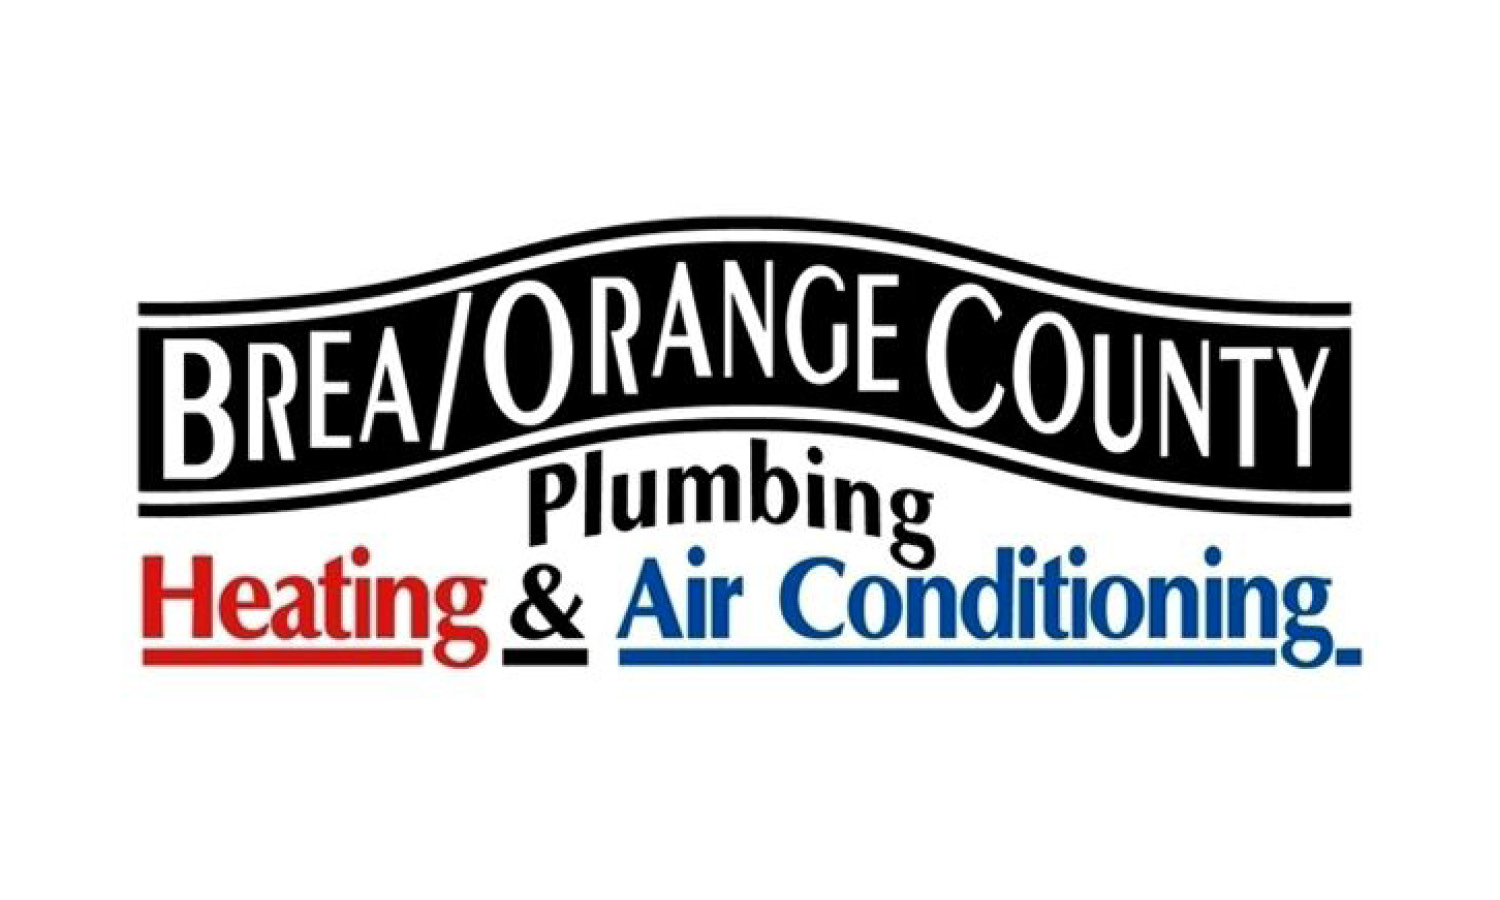 Brea/Orange County Plumbing, Heating & Air Conditioning